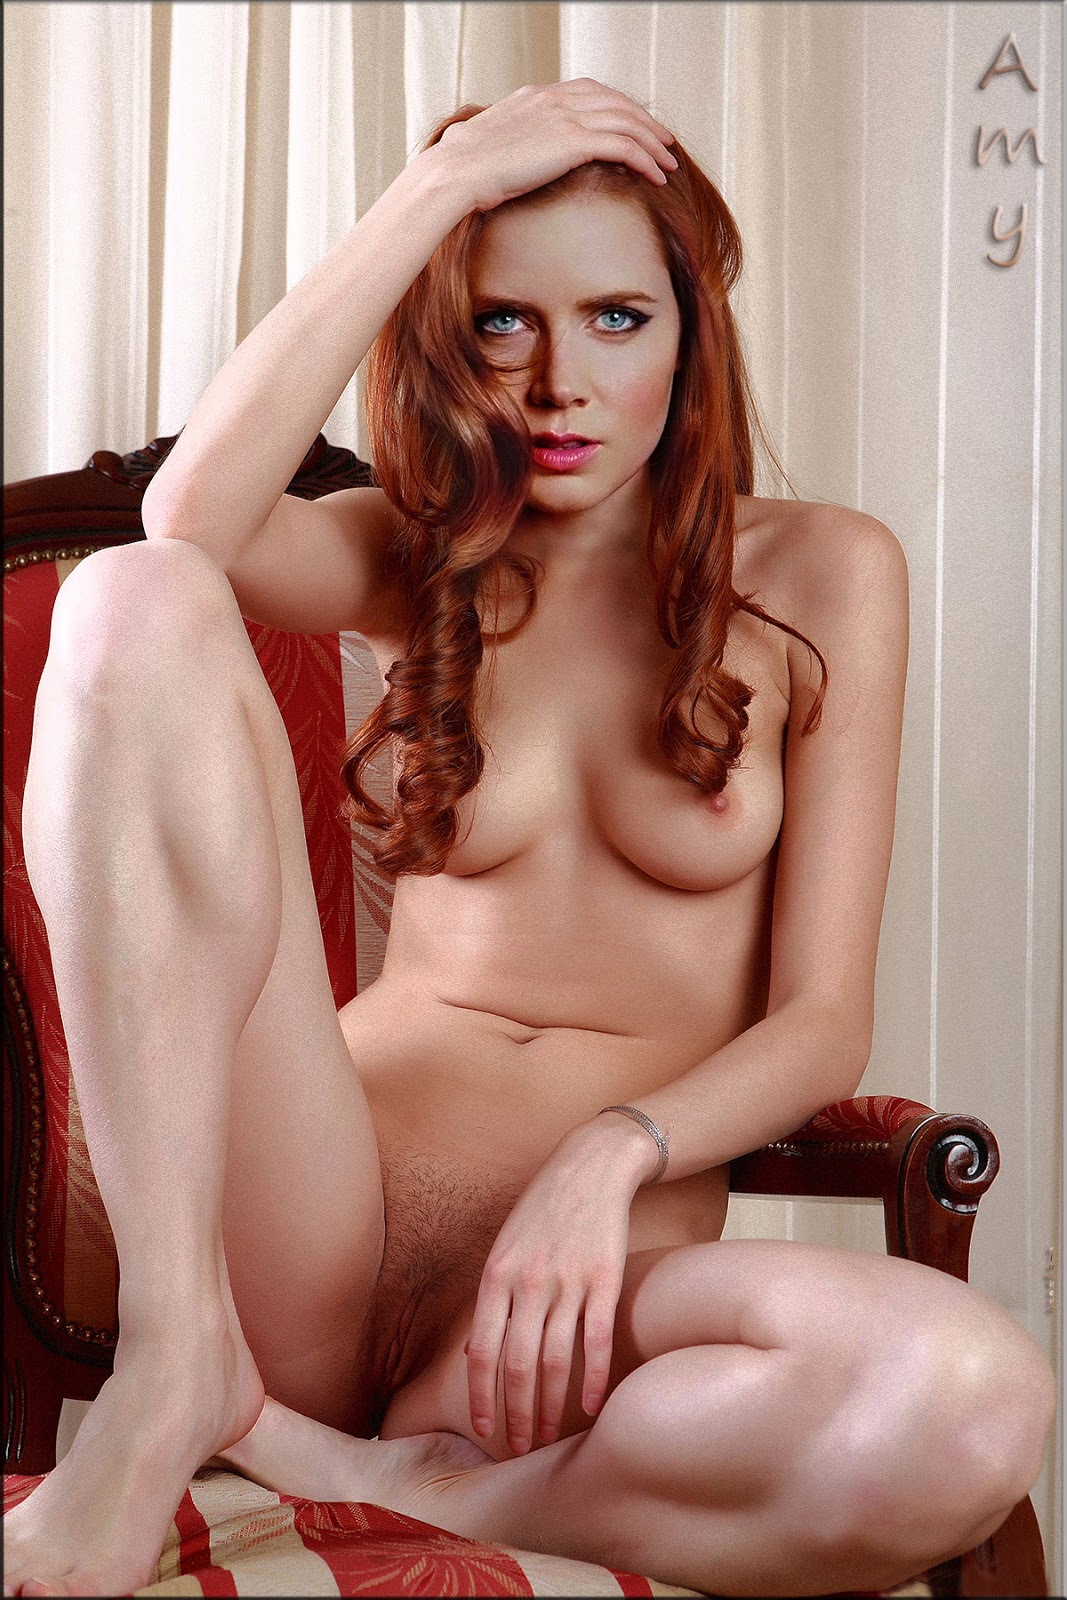 Nude lois lane amy adams